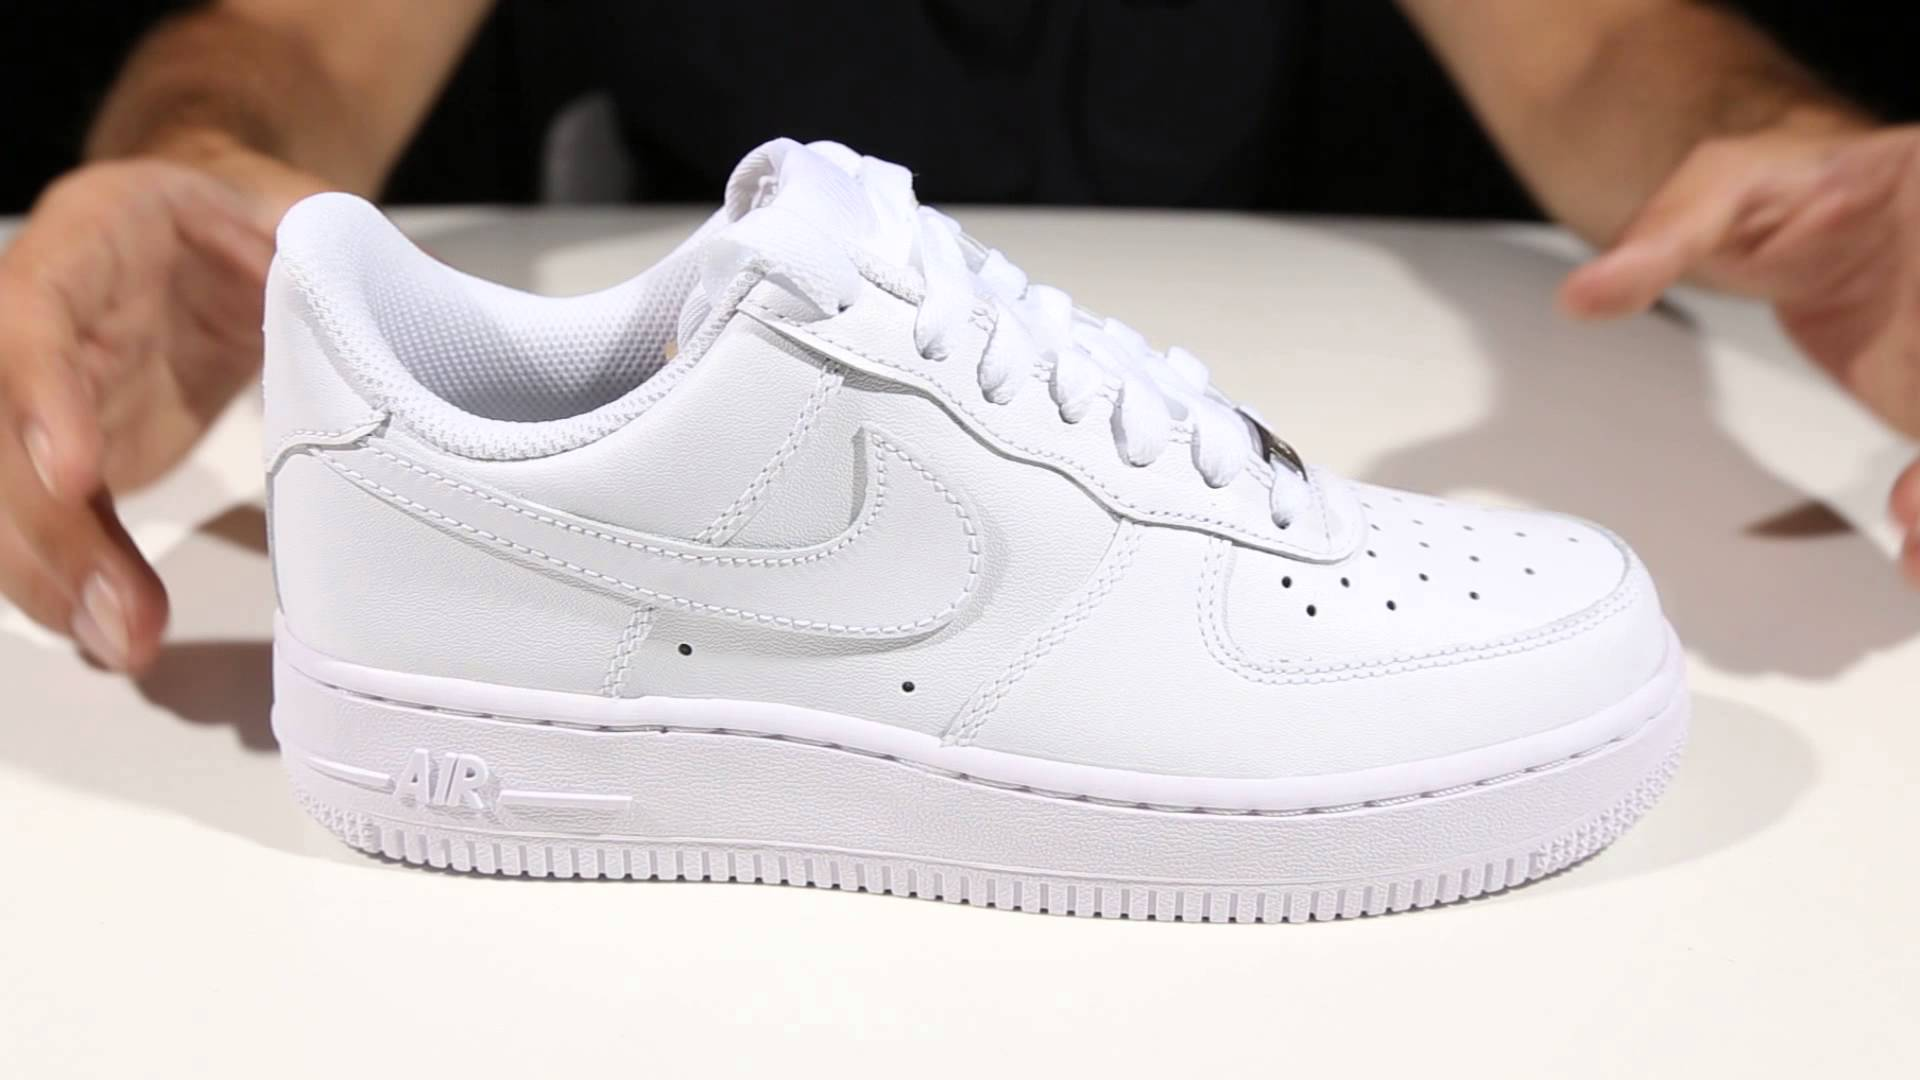 b9dee3182c7 Nike Air Force One Women   Up to 60% off - Buy Nike Shoes at ...